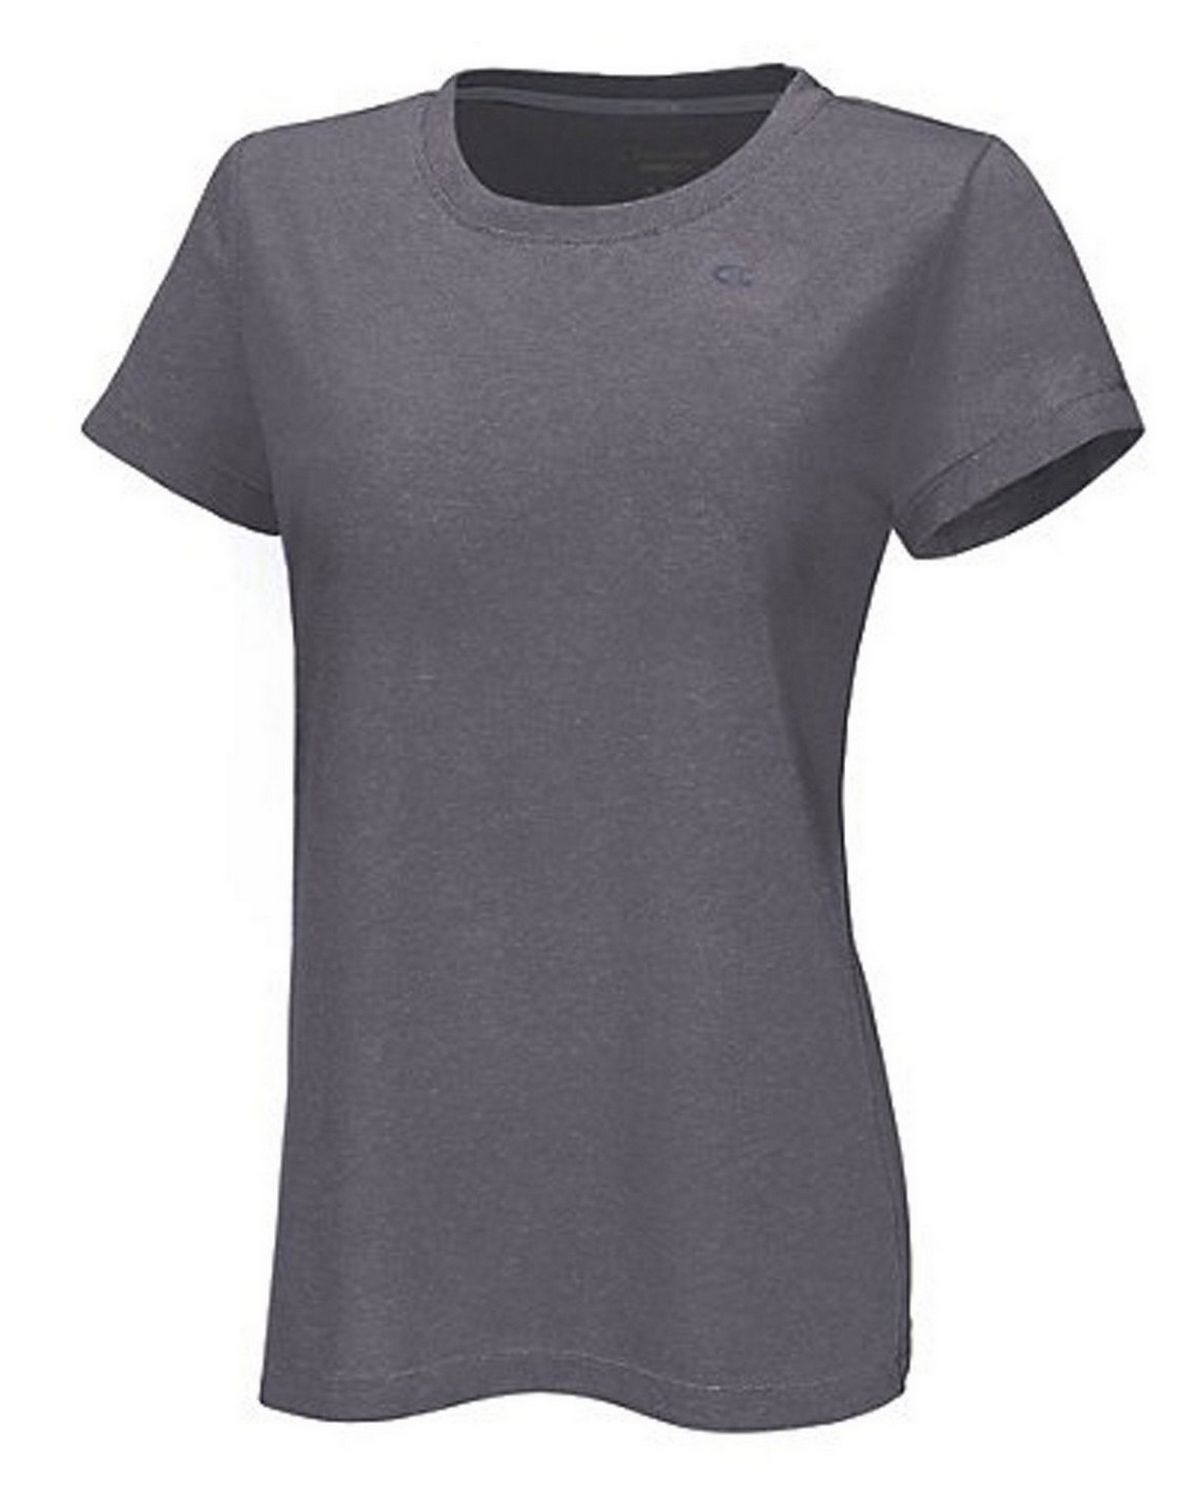 Champion 7963 Vapor PowerTrain Short Sleeve Heather Tee - Granite Heather - XL 7963